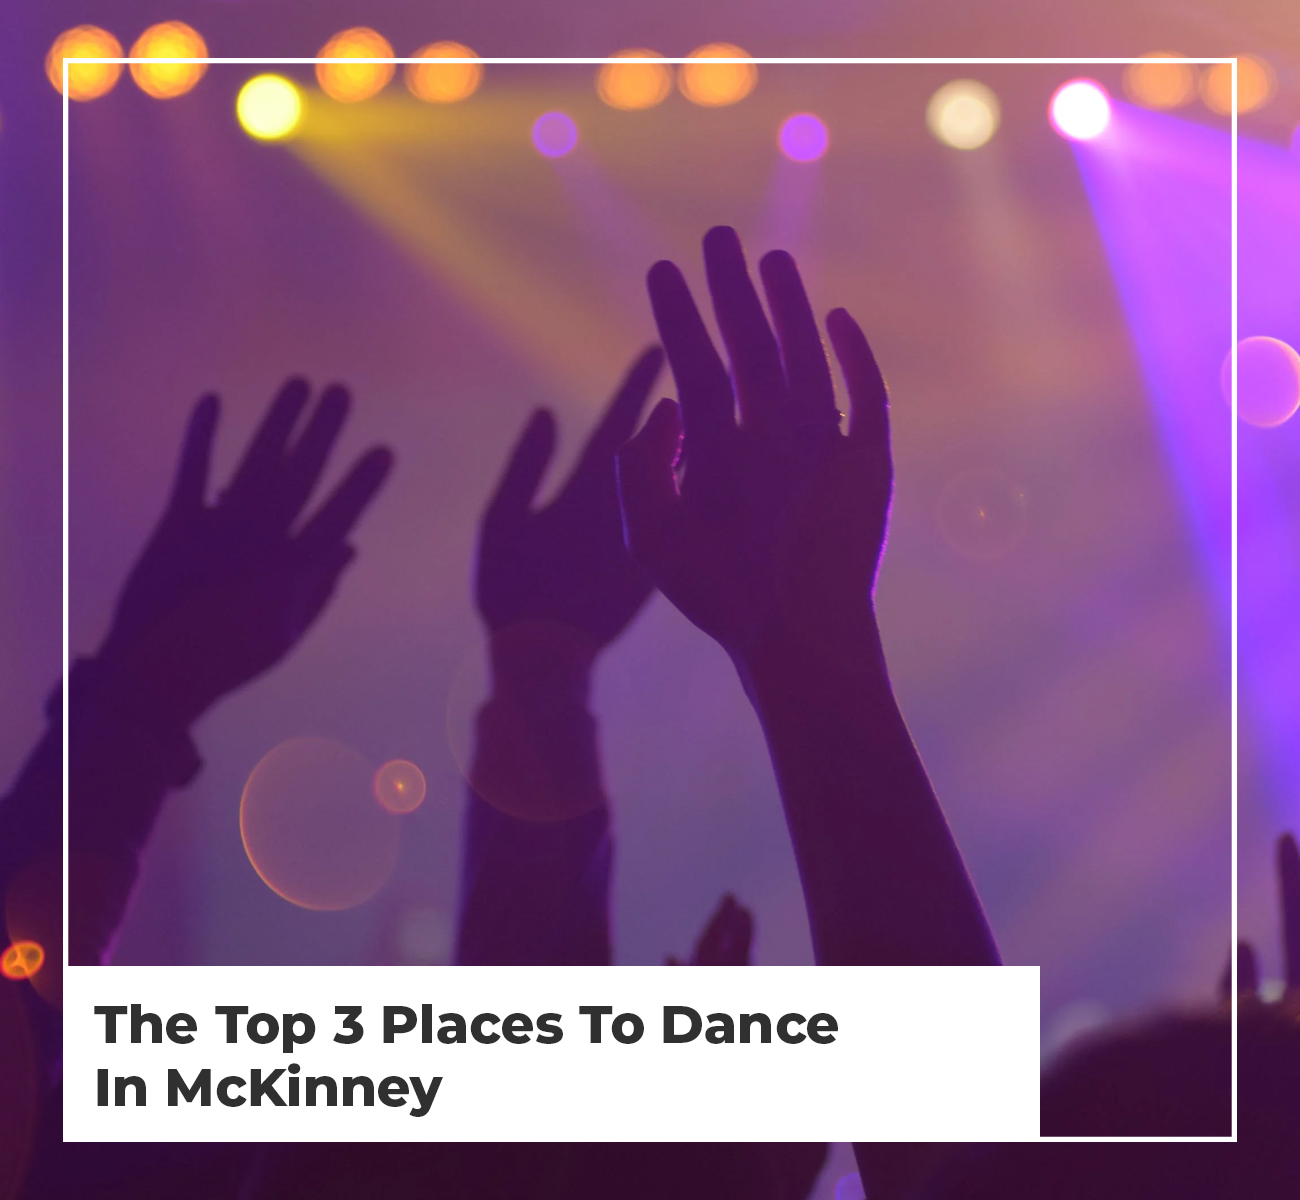 Top 3 Places To Dance in McKinney